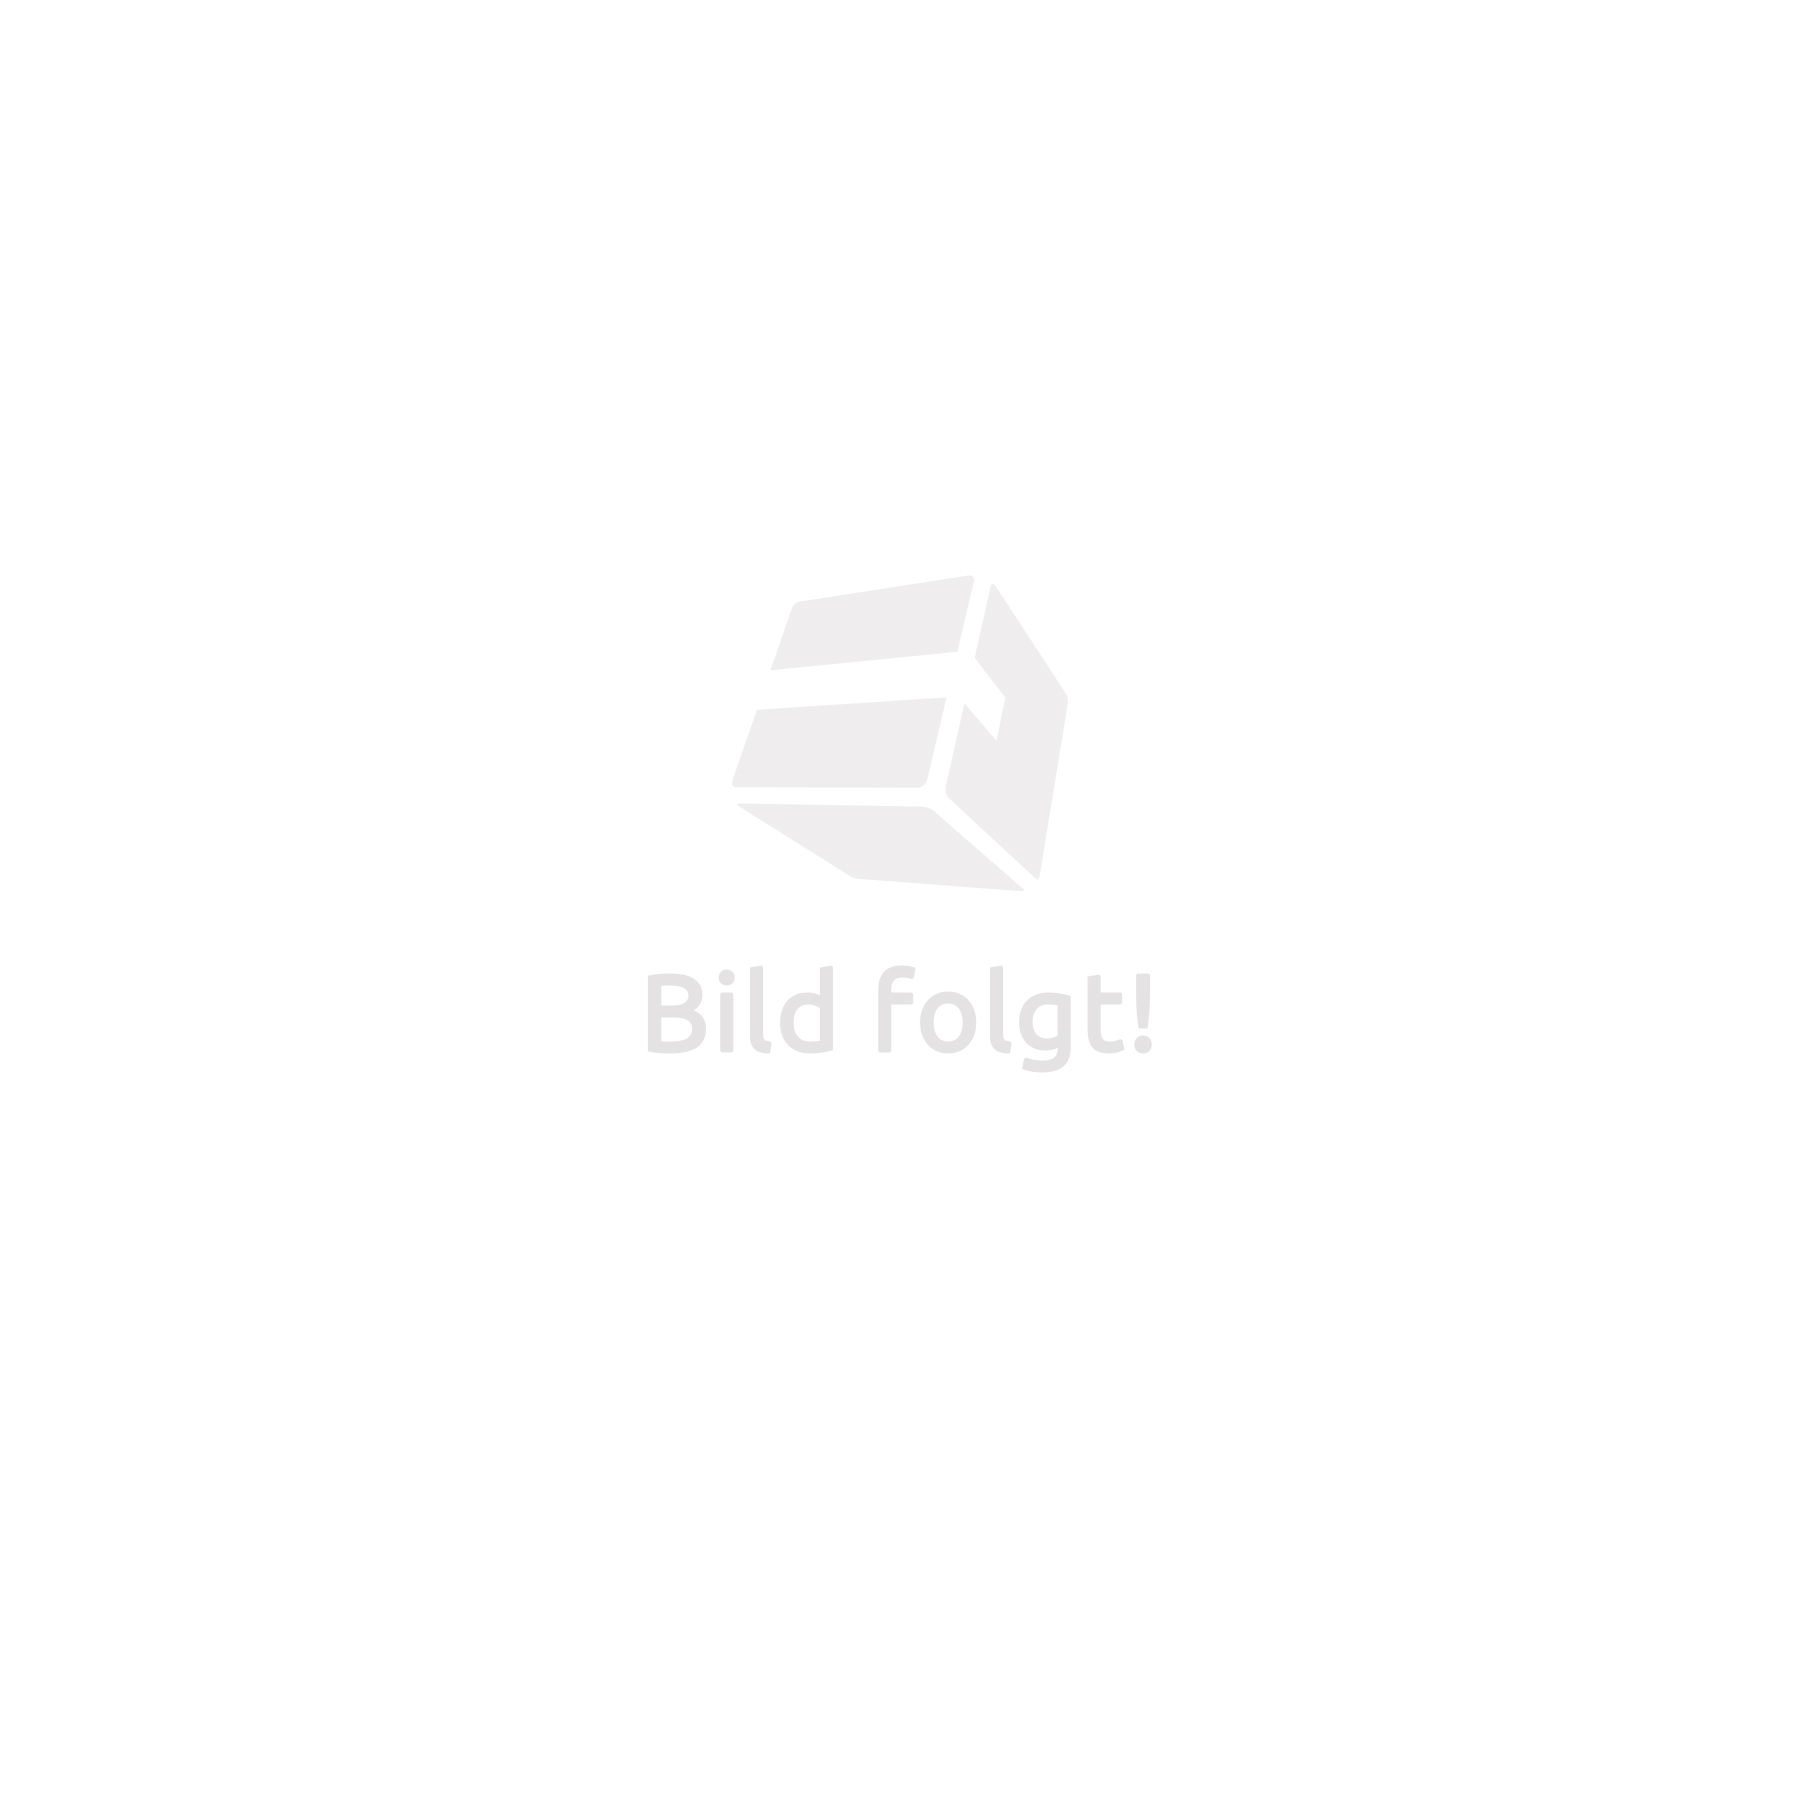 coffret pour 10 montres bo te montre bo tier rangement bijoux pr sentoir noir ebay. Black Bedroom Furniture Sets. Home Design Ideas